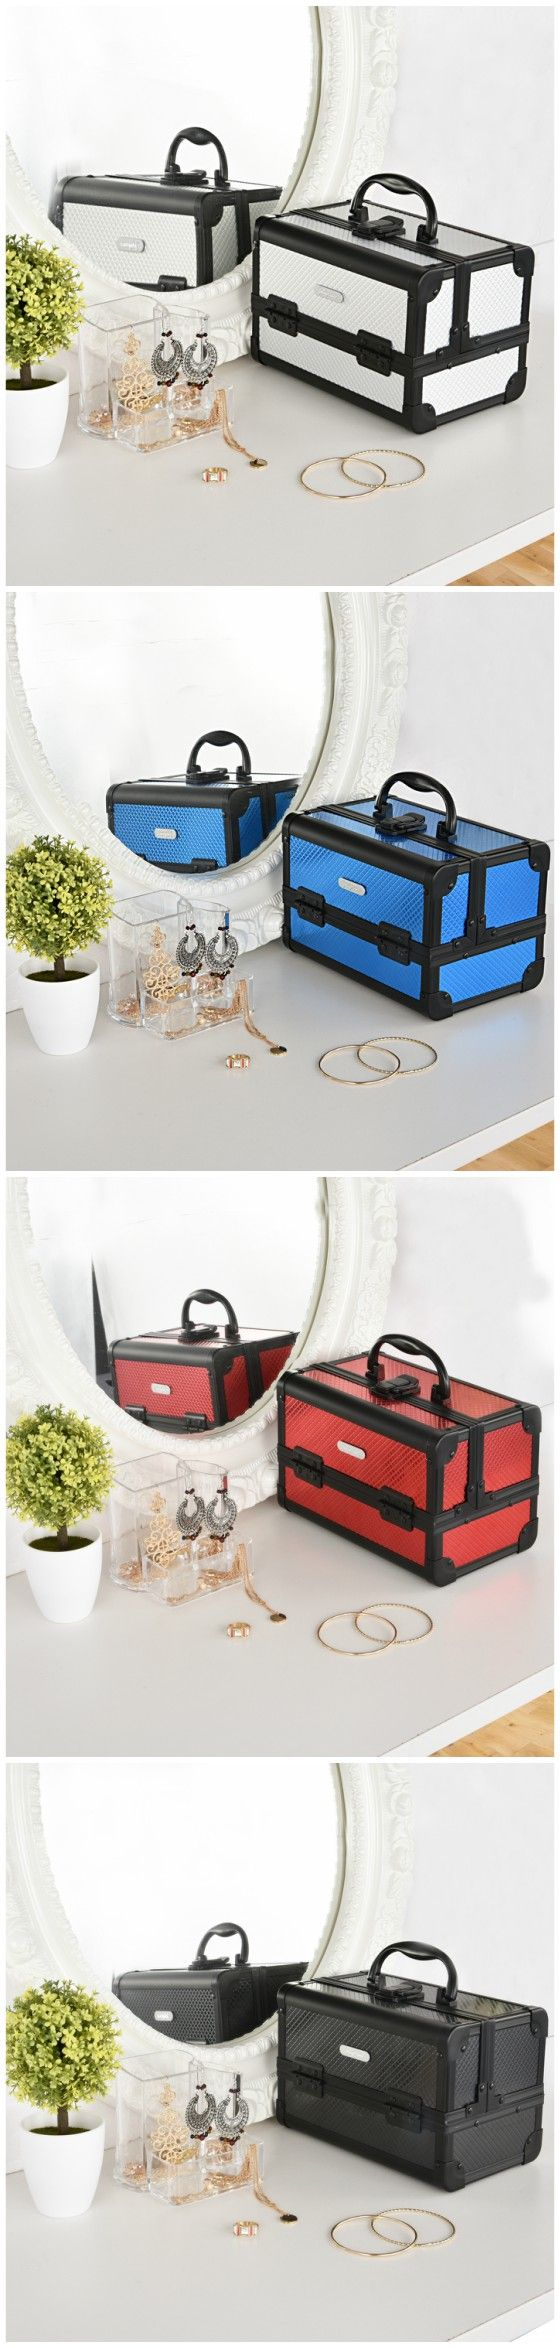 Silver/Red/Blue/Black Diamond Professional Makeup Train Case with Mirror--Joligrace Travel makeup case with mirror Artis makeup case Makeup vanity with storage Makeup organizer with mirror Best makeup case Big makeup case Cheap makeup organizer Cosmetic train case Makeup case with brush holder Makeup organizer with drawers Makeup case with lock Makeup artist train case Portable makeup case